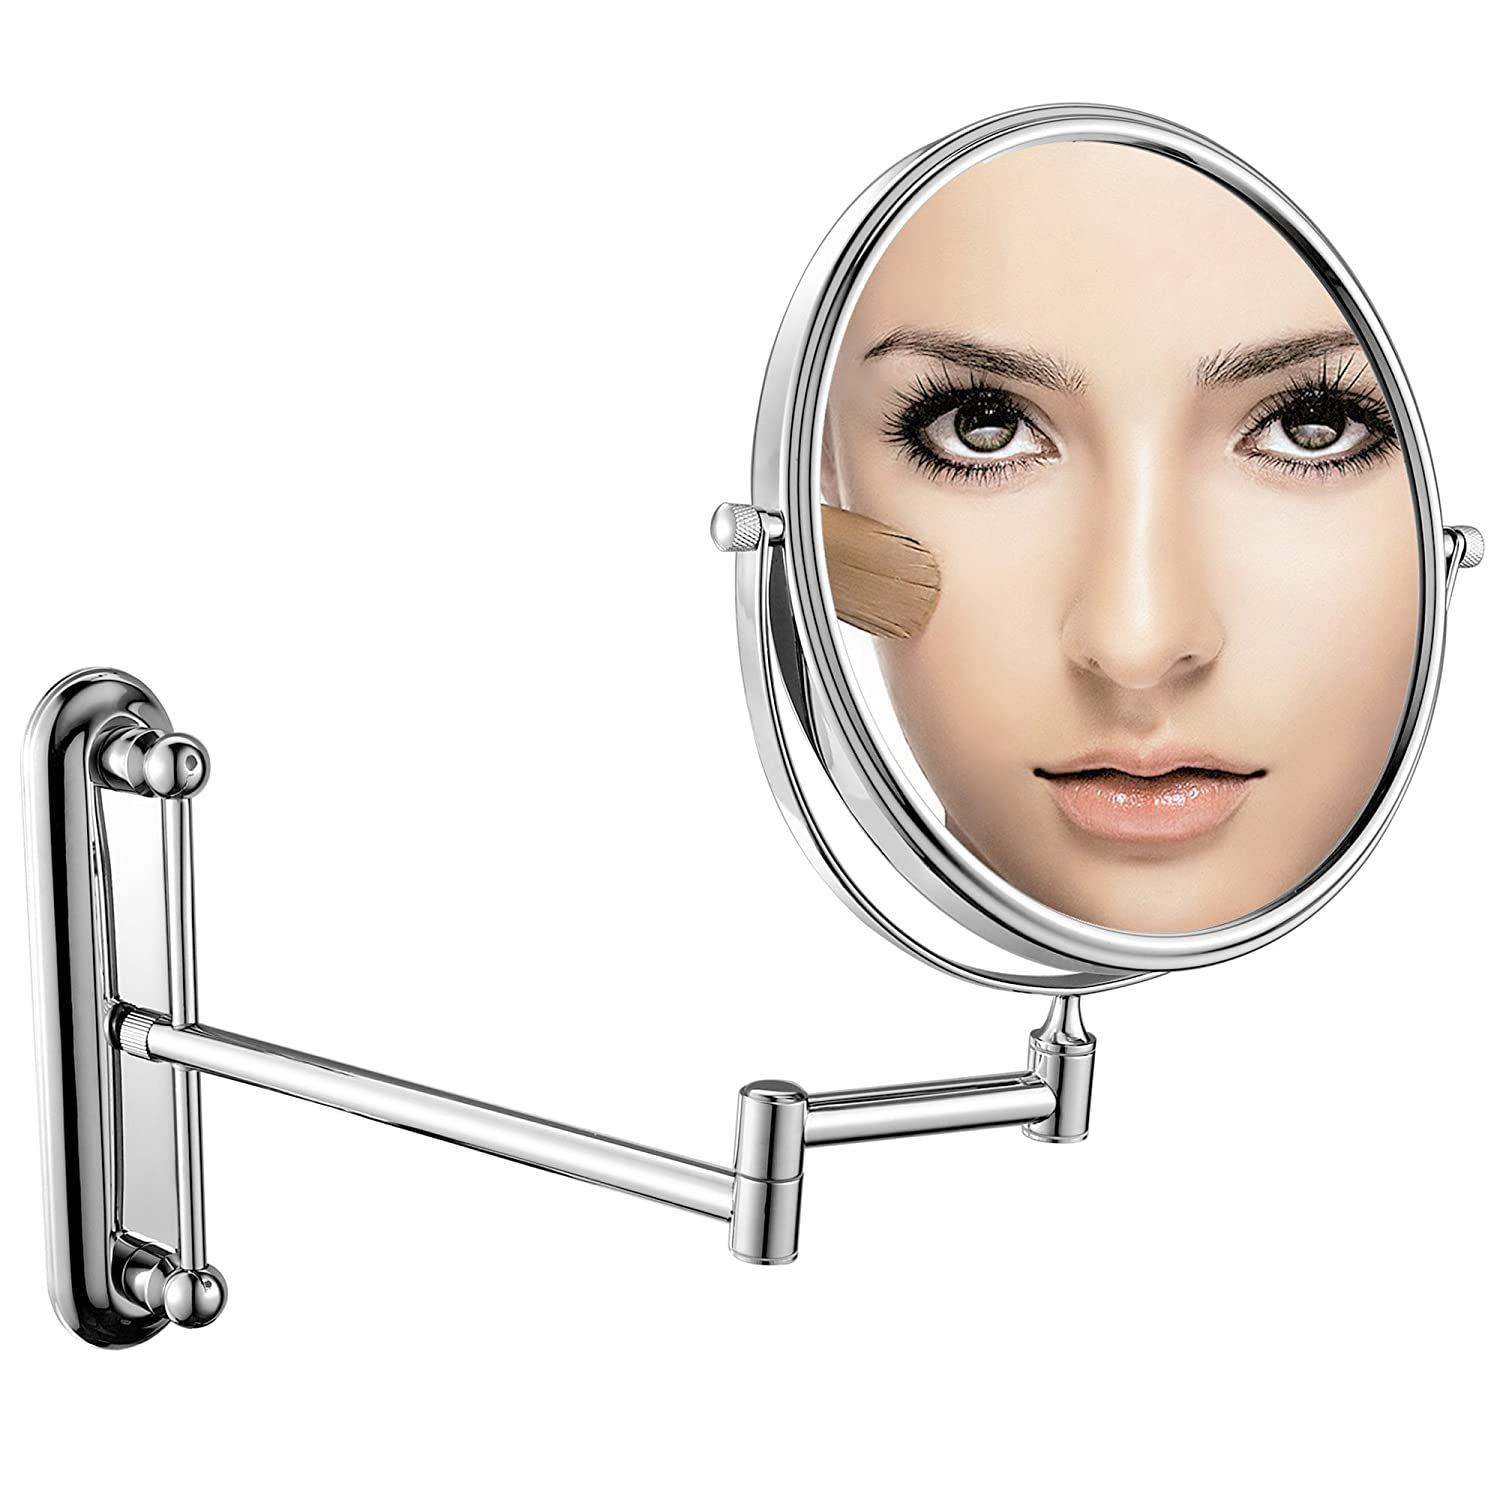 GuRun 7x Magnification Adjustable Round Wall Mount Mirror 6-inch Double Sided Makeup Mirrors,Chrome Finish M1806 6in,7x